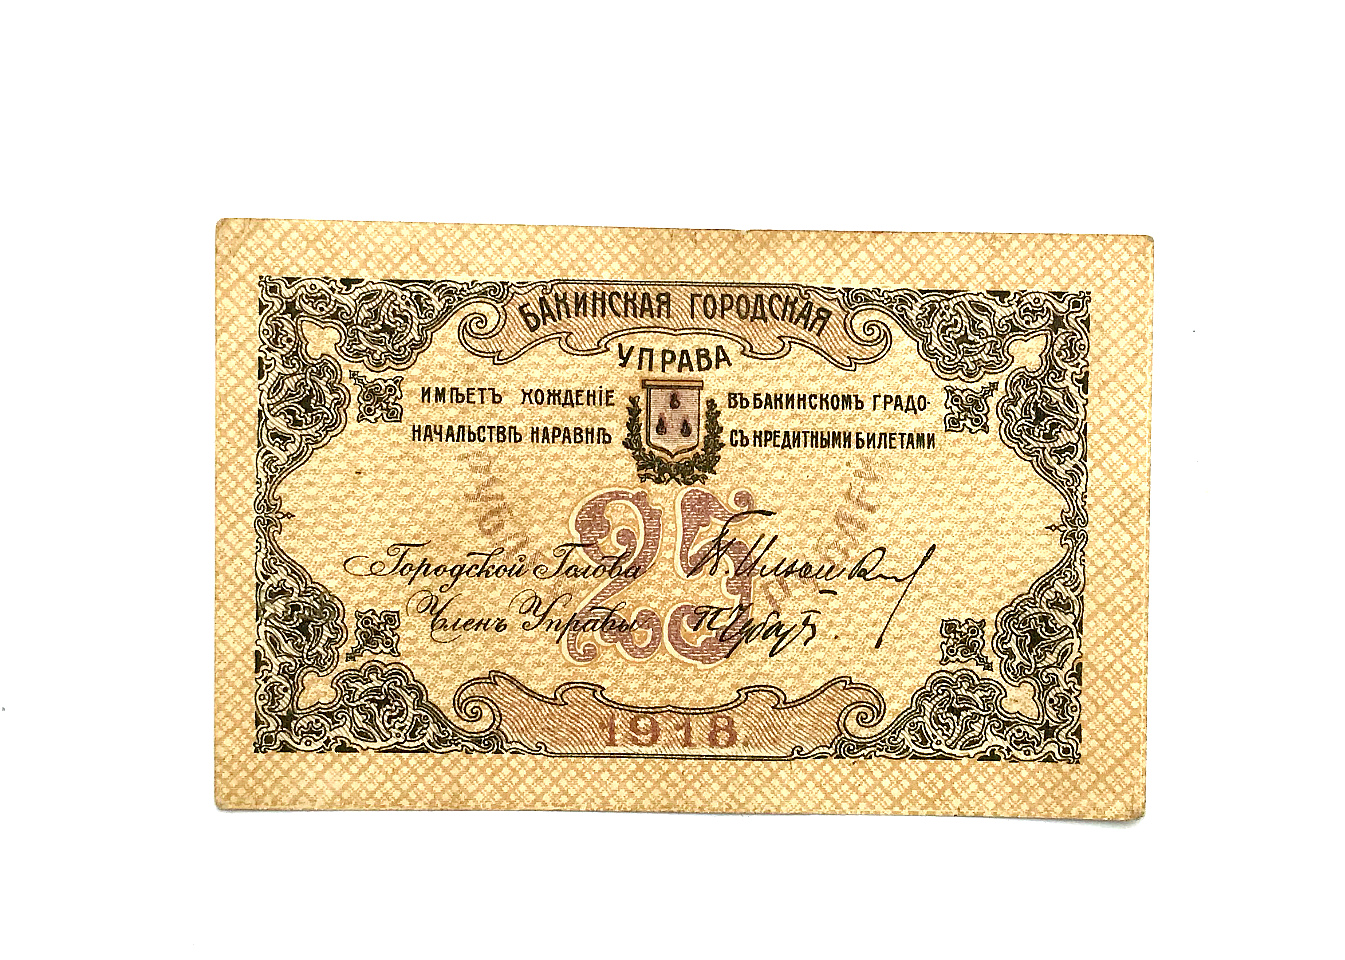 25 rubles banknote, 1918, Azerbaijan | Hobby Keeper Articles